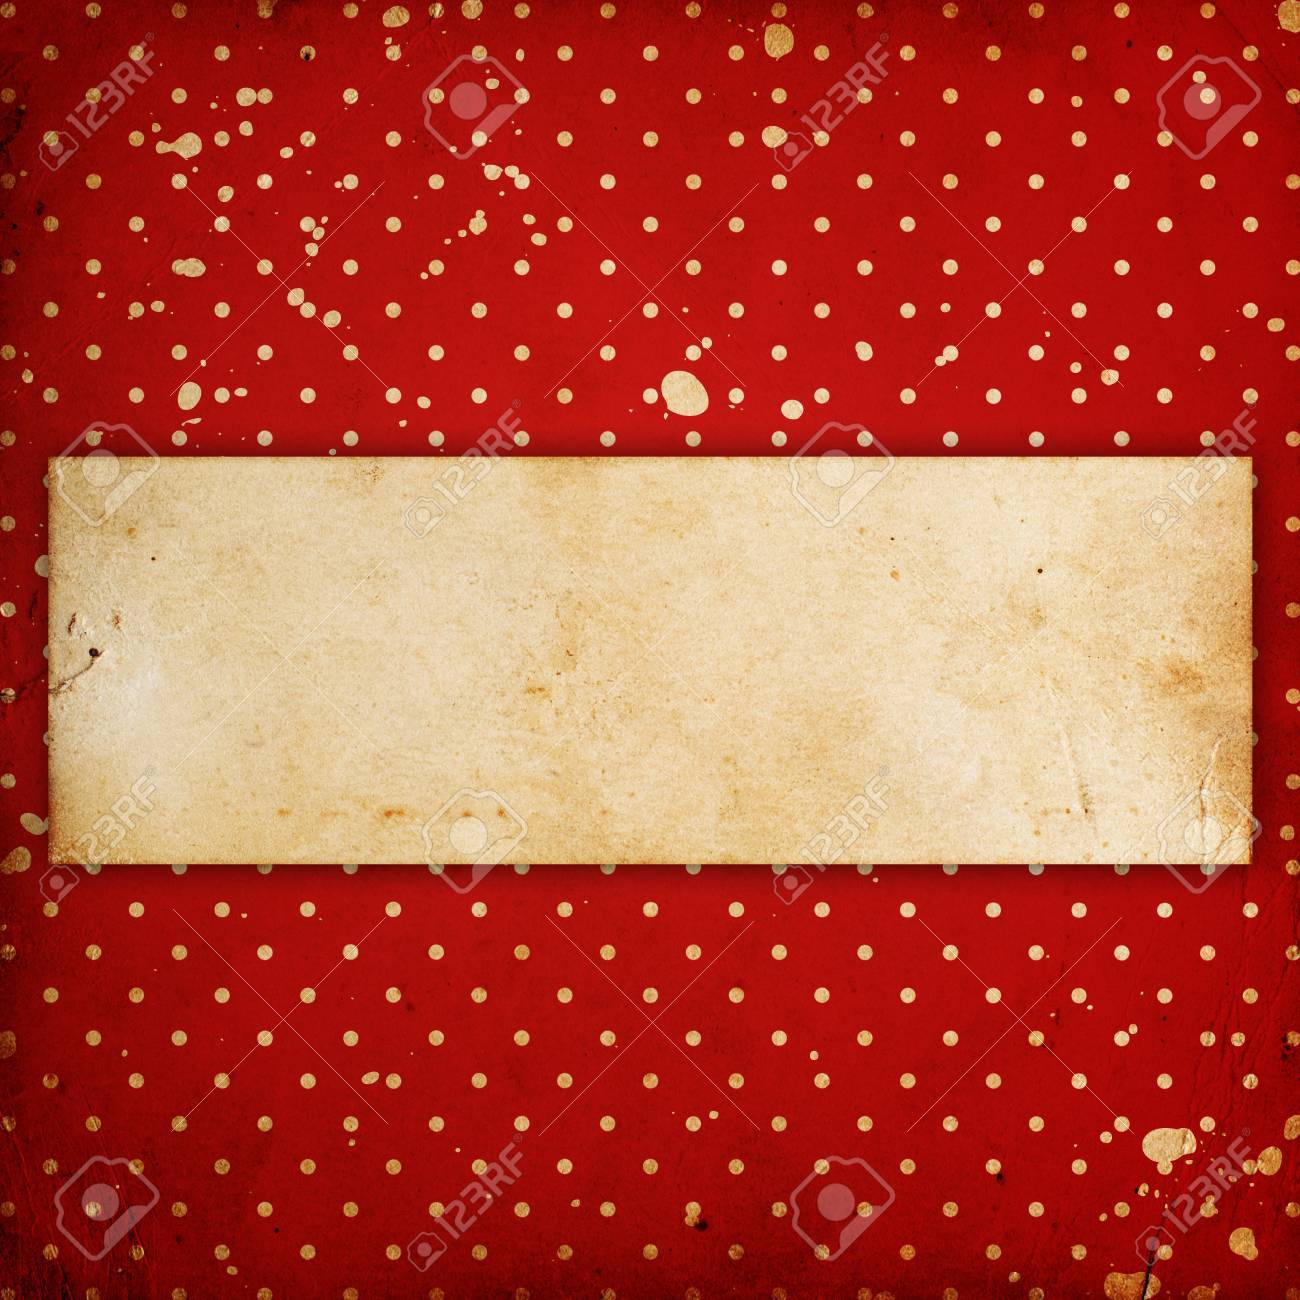 vintage dotted background with place for text Stock Photo - 14674300